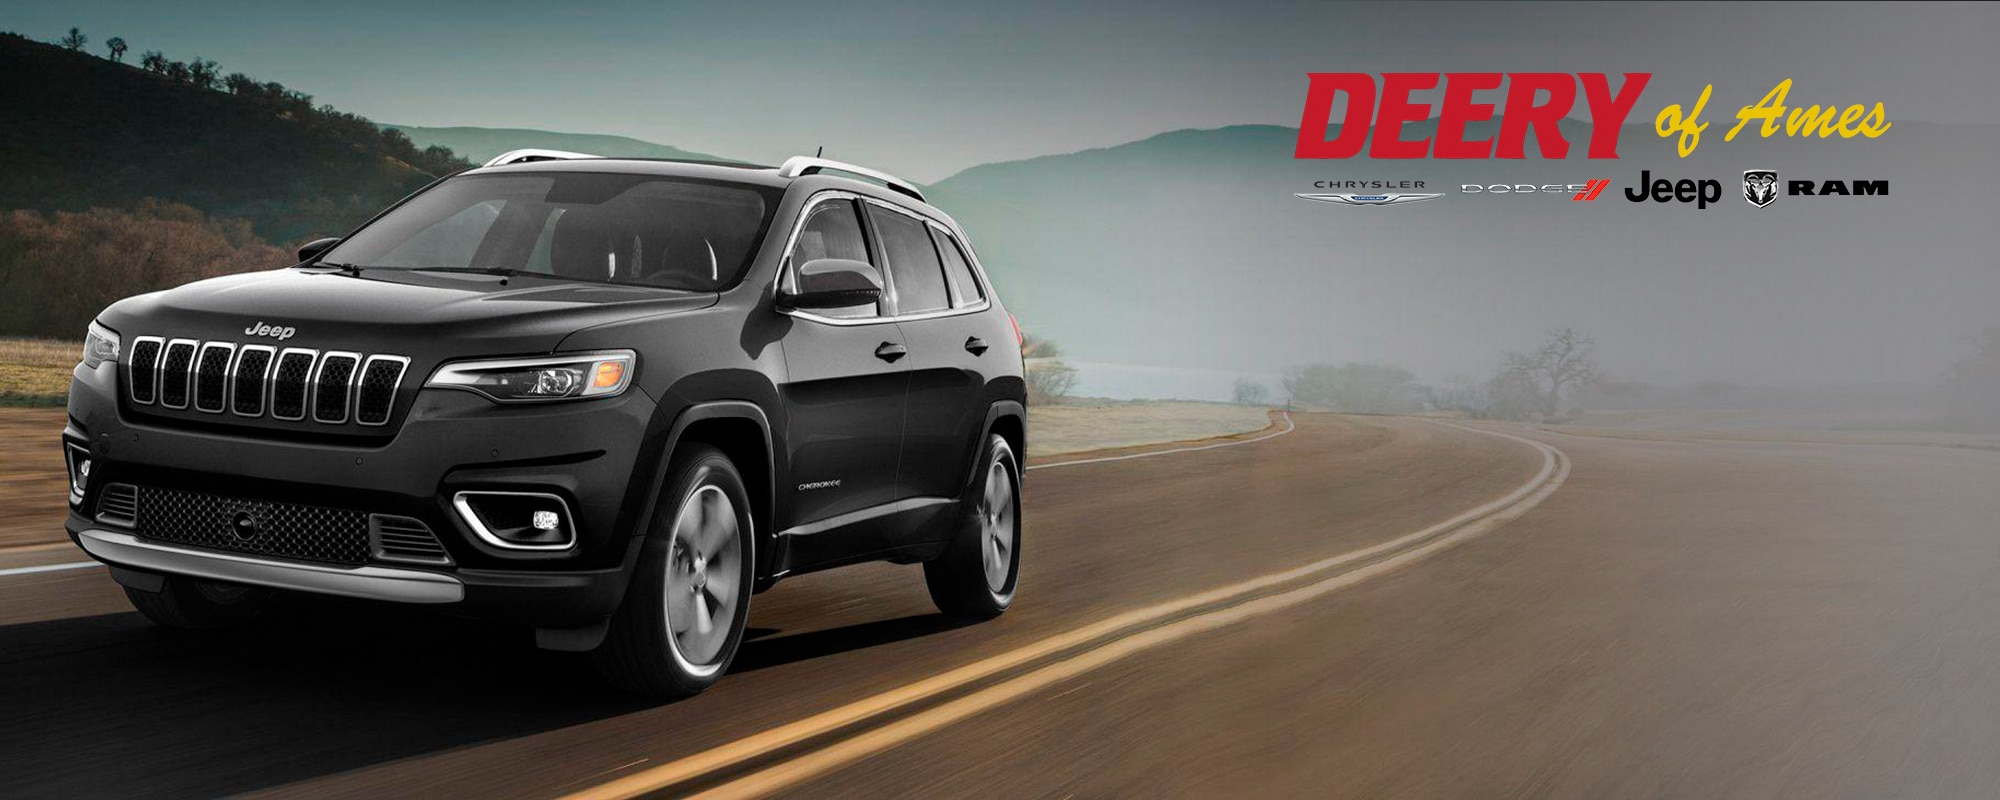 2019 Jeep Cherokee Overview - 1